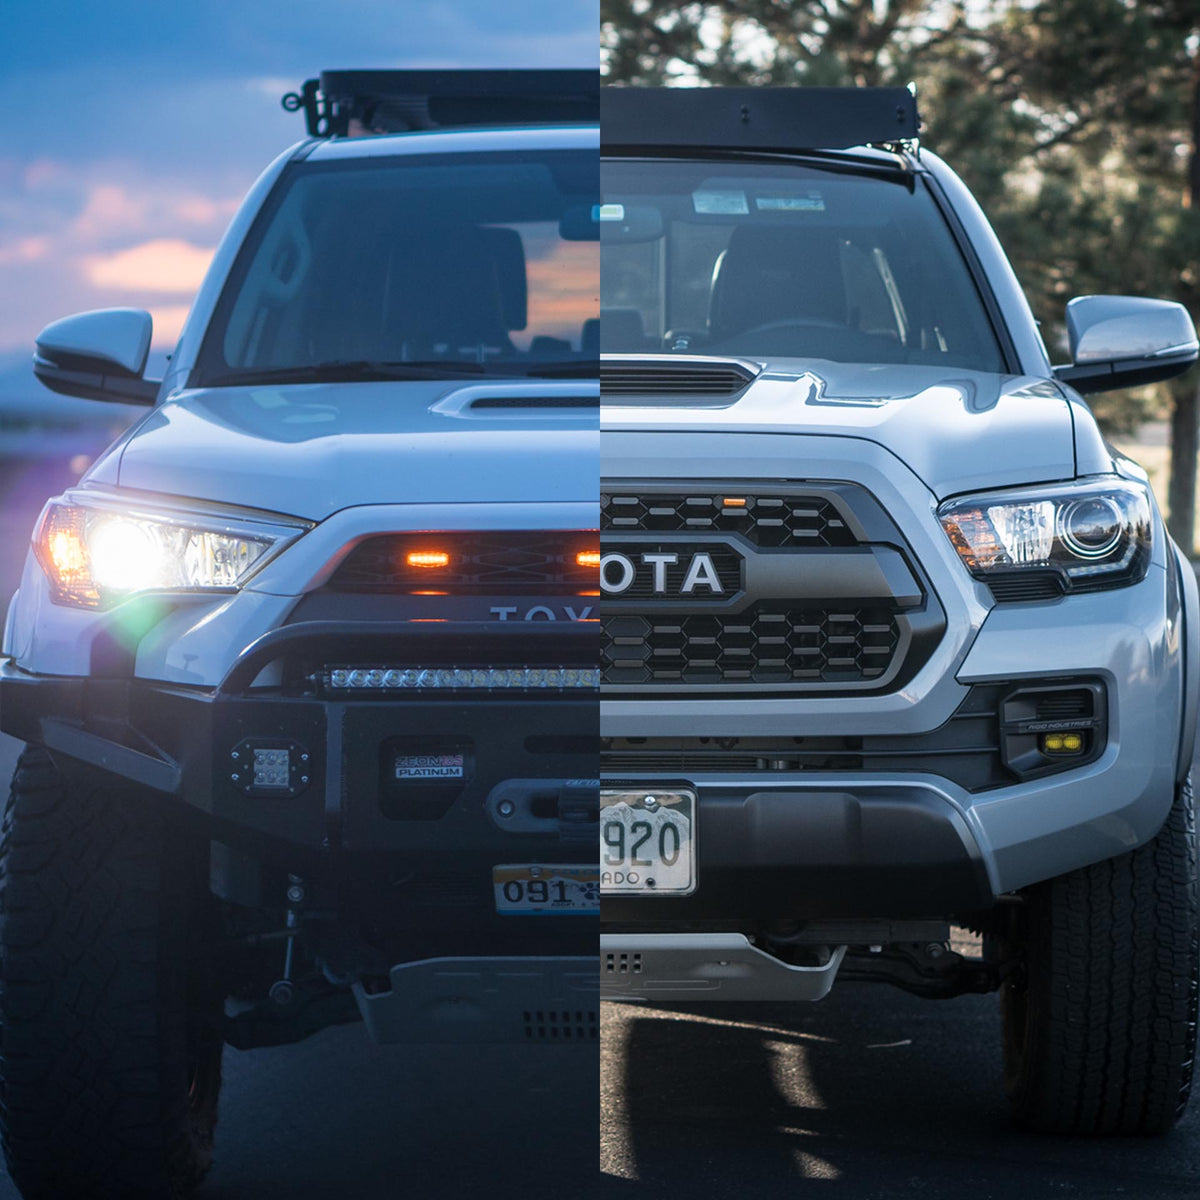 5th gen 4runner 3rd gen tacoma